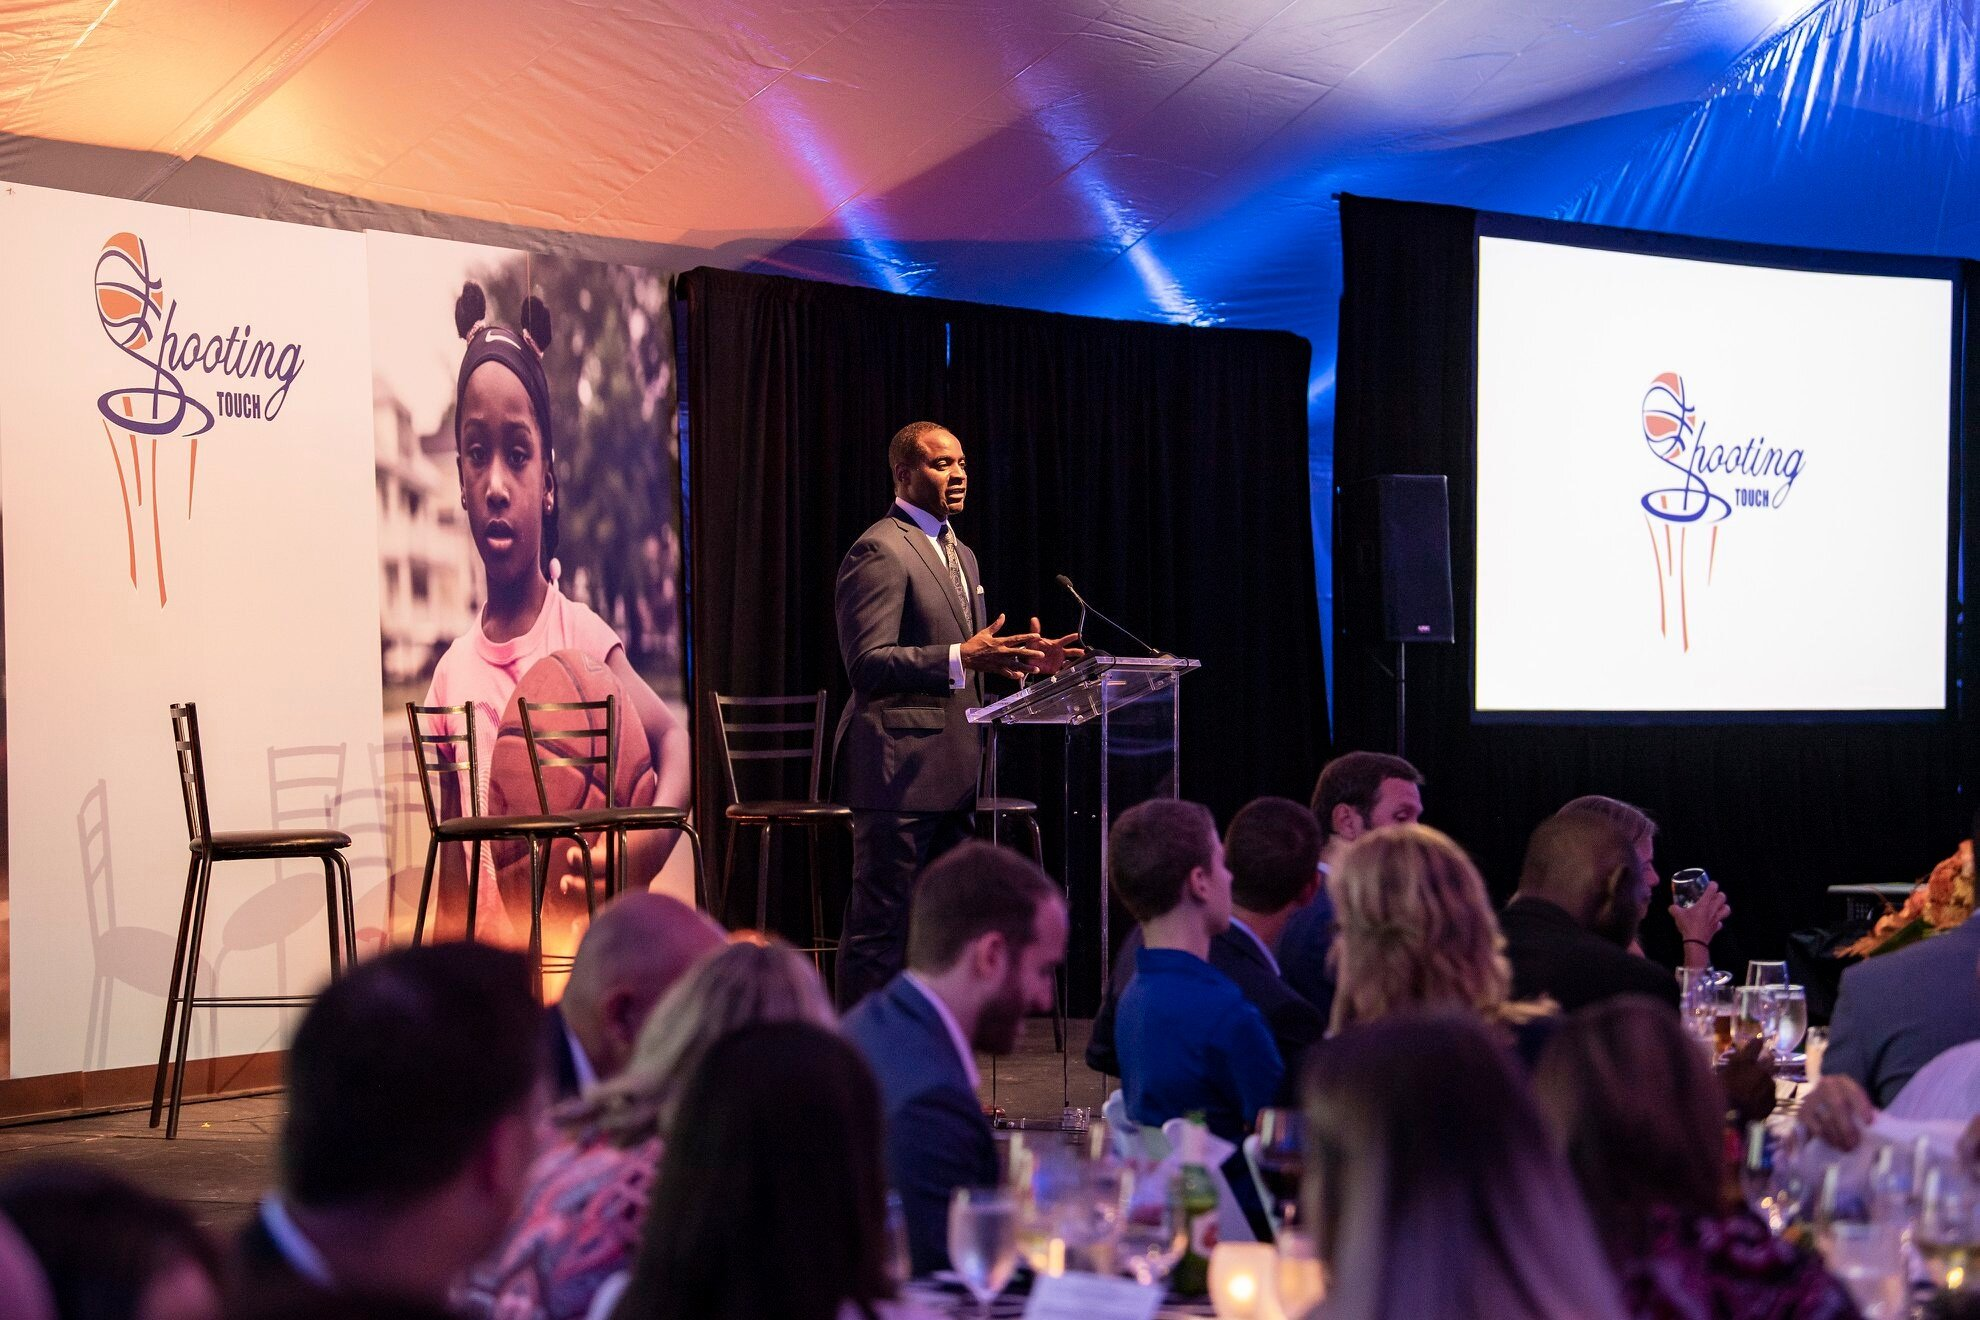 Shooting Touch Annual Gala - An evening to celebrate 10+ years of leveraging the power of basketball to educate and empower youth in need. Click here for more information.